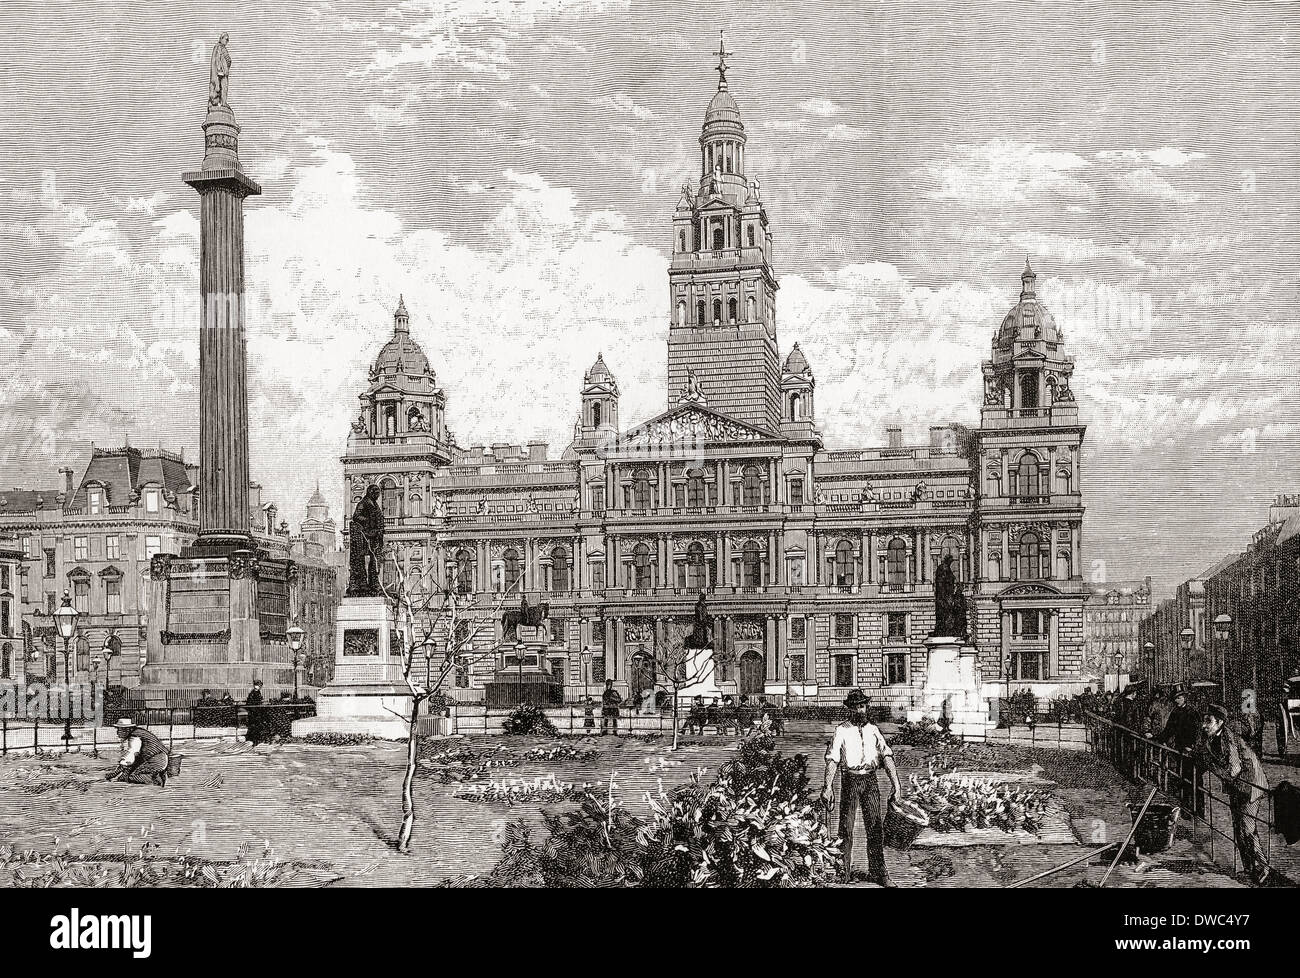 The City Chambers, George Square, Glasgow, Scotland in the 19th century. - Stock Image